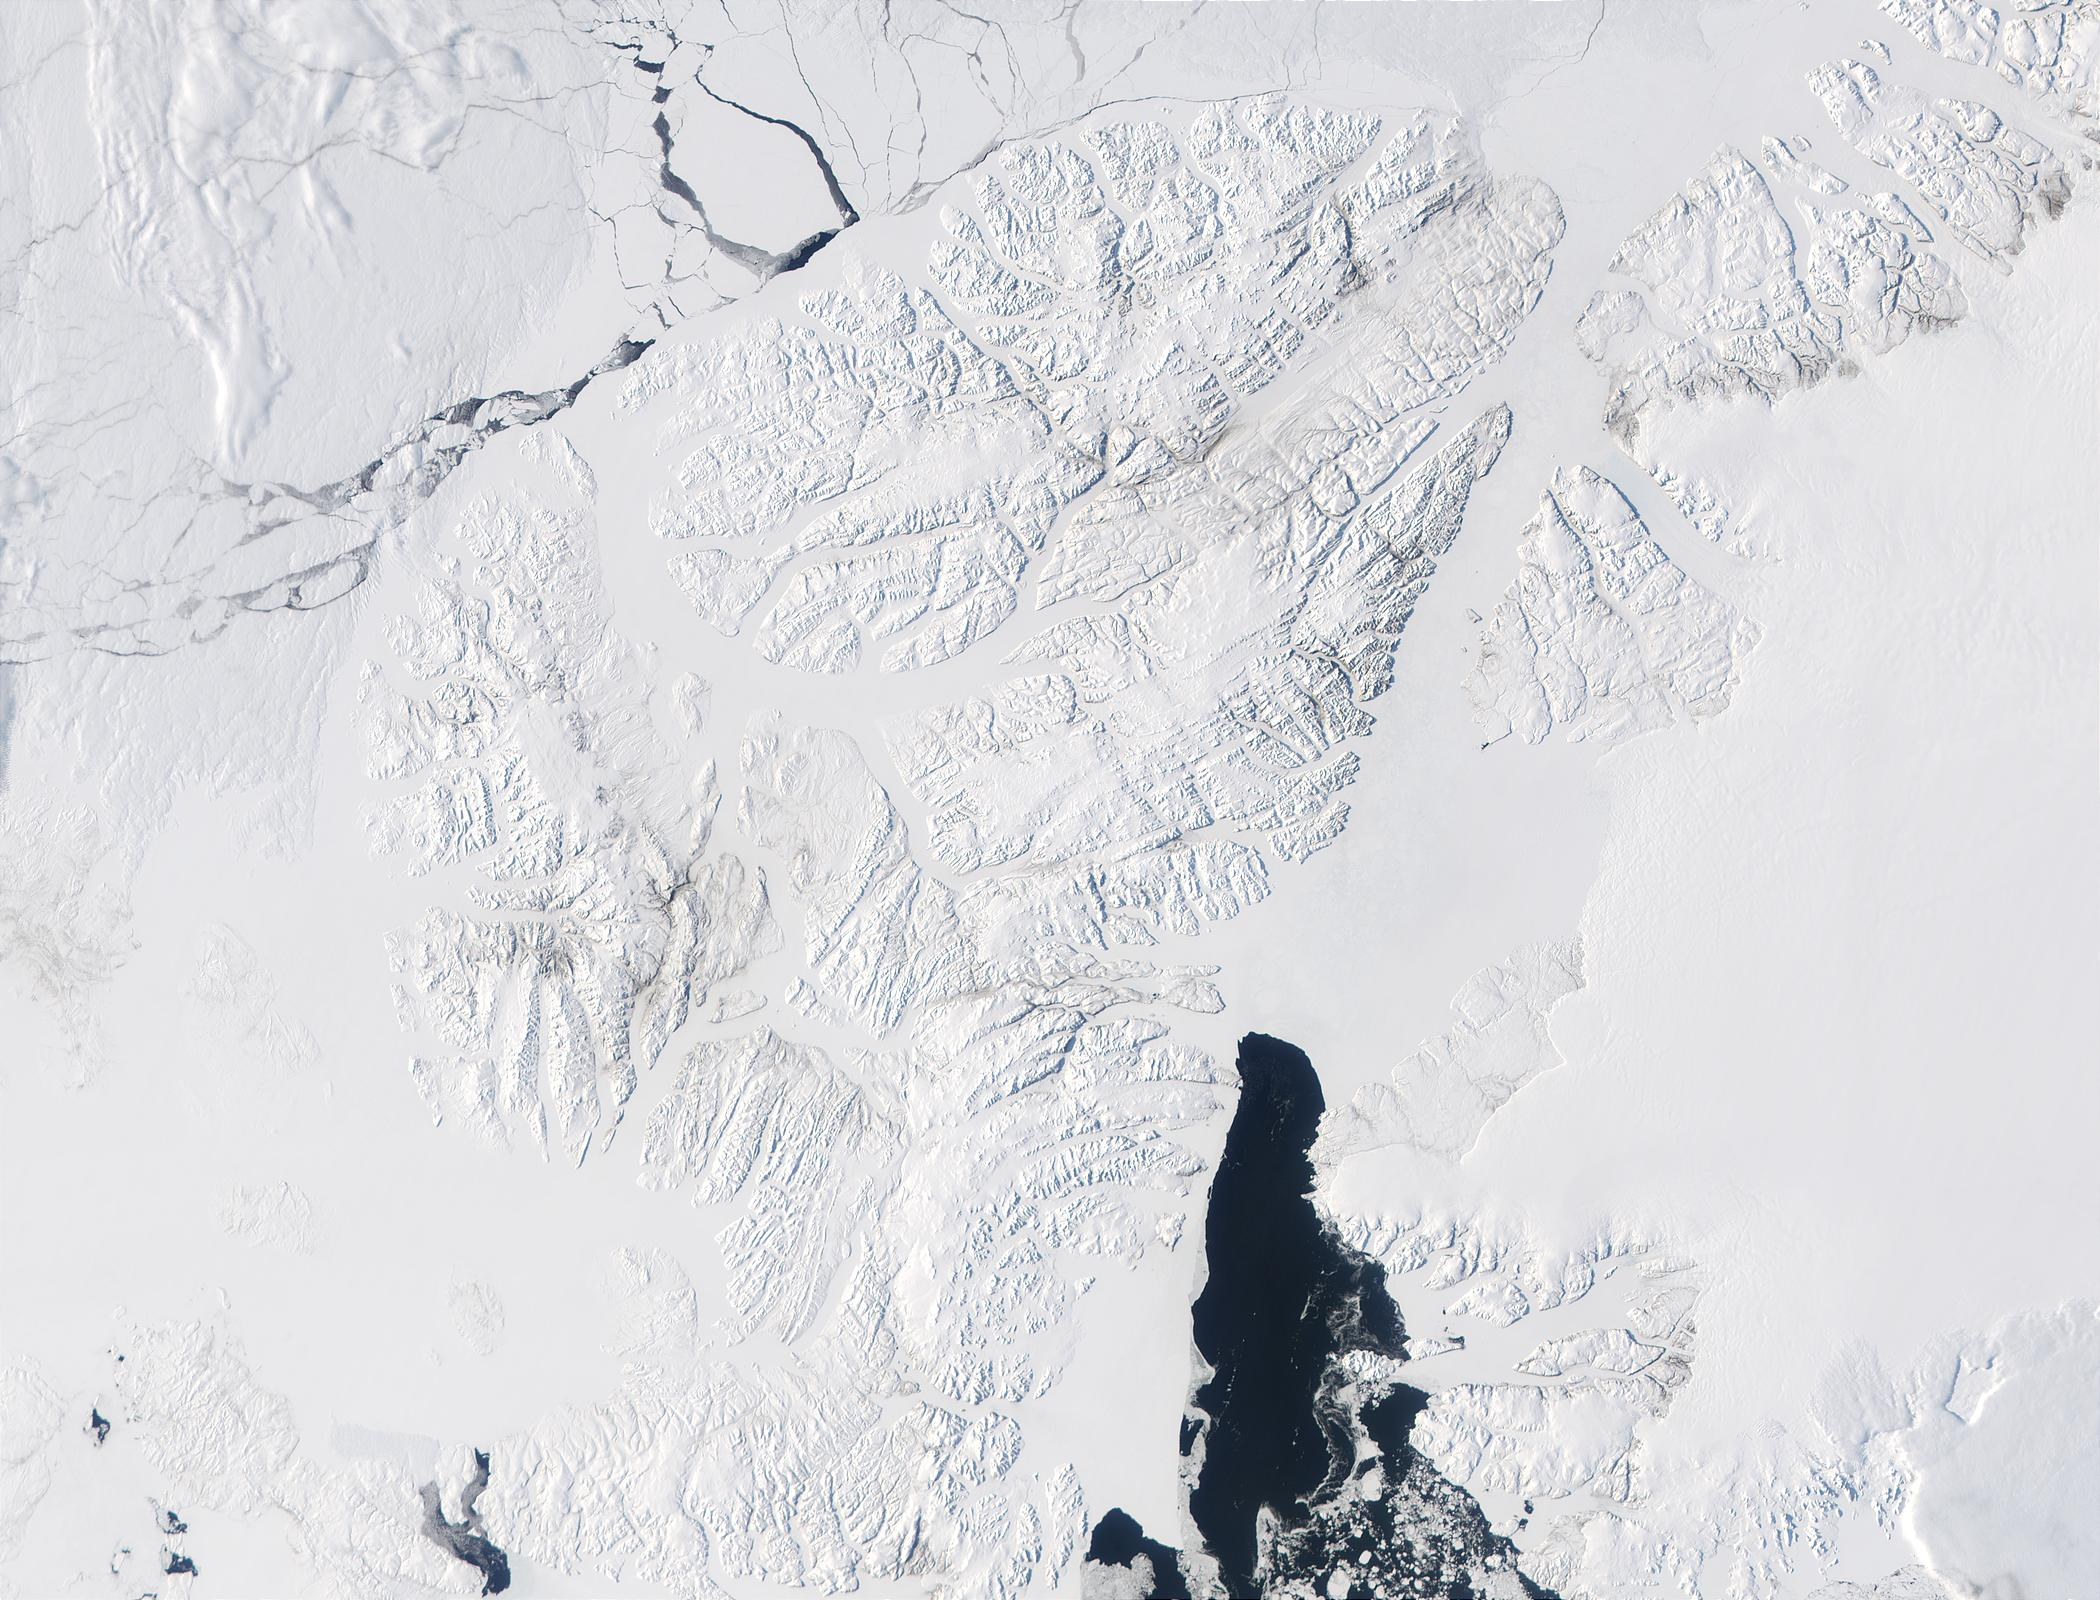 Queen Elizabeth Islands, Northern Canada - related image preview